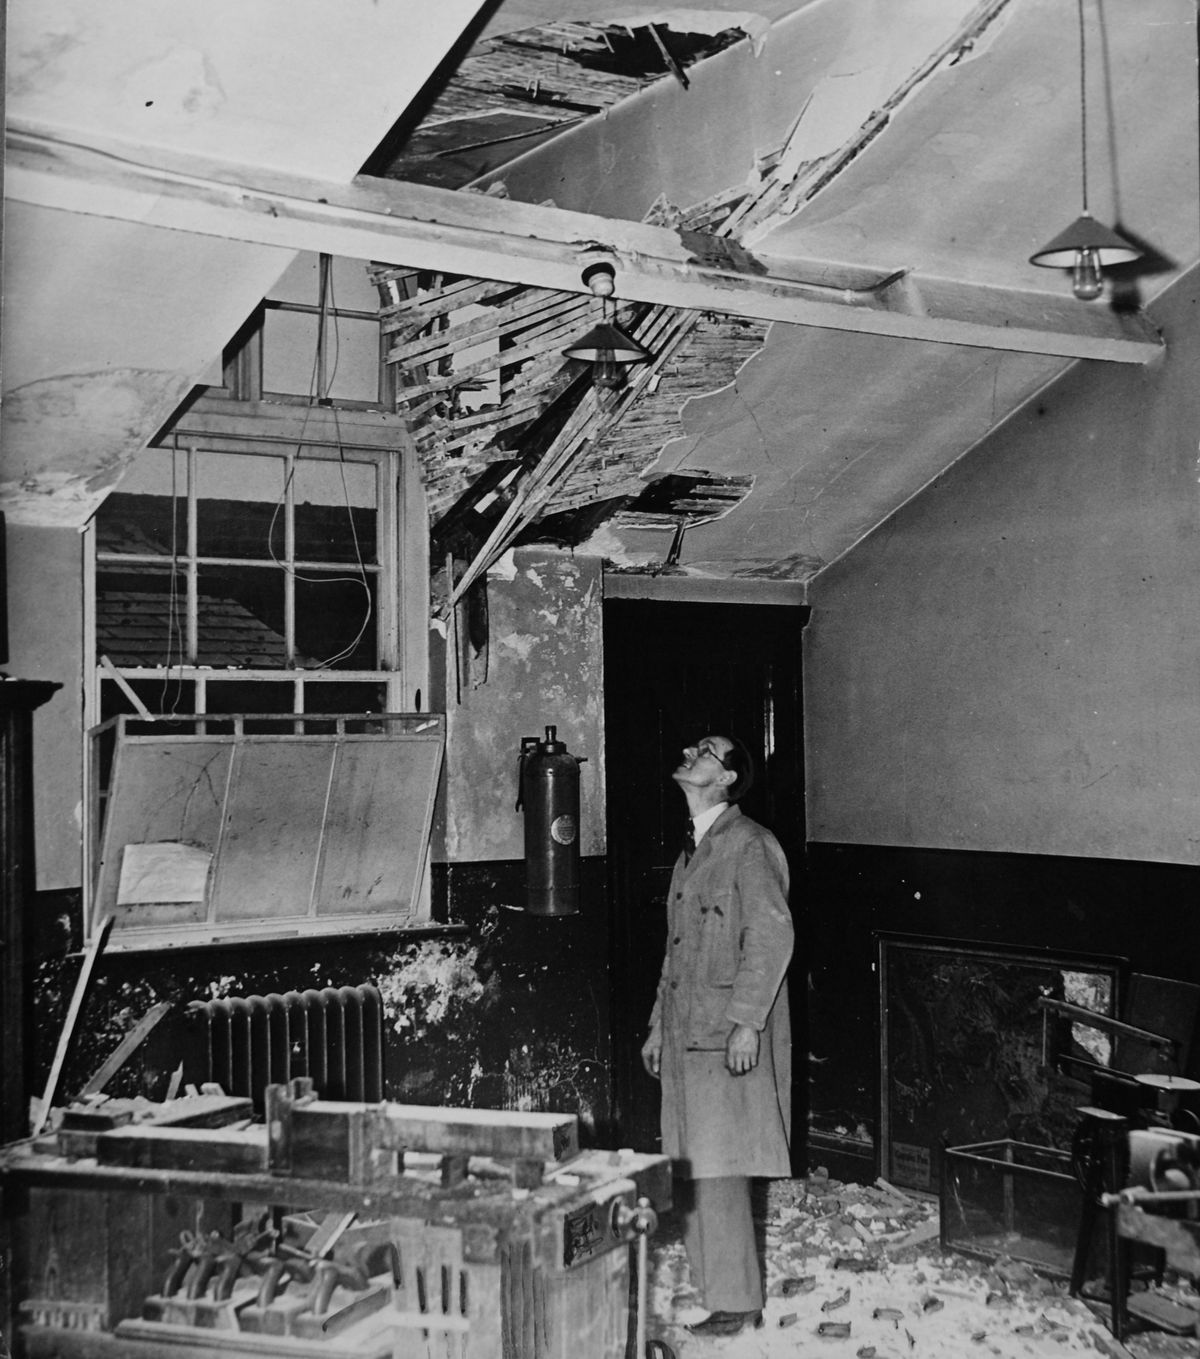 This images captures the aftermath of a bomb dropped on Beckminster Special School in 1940